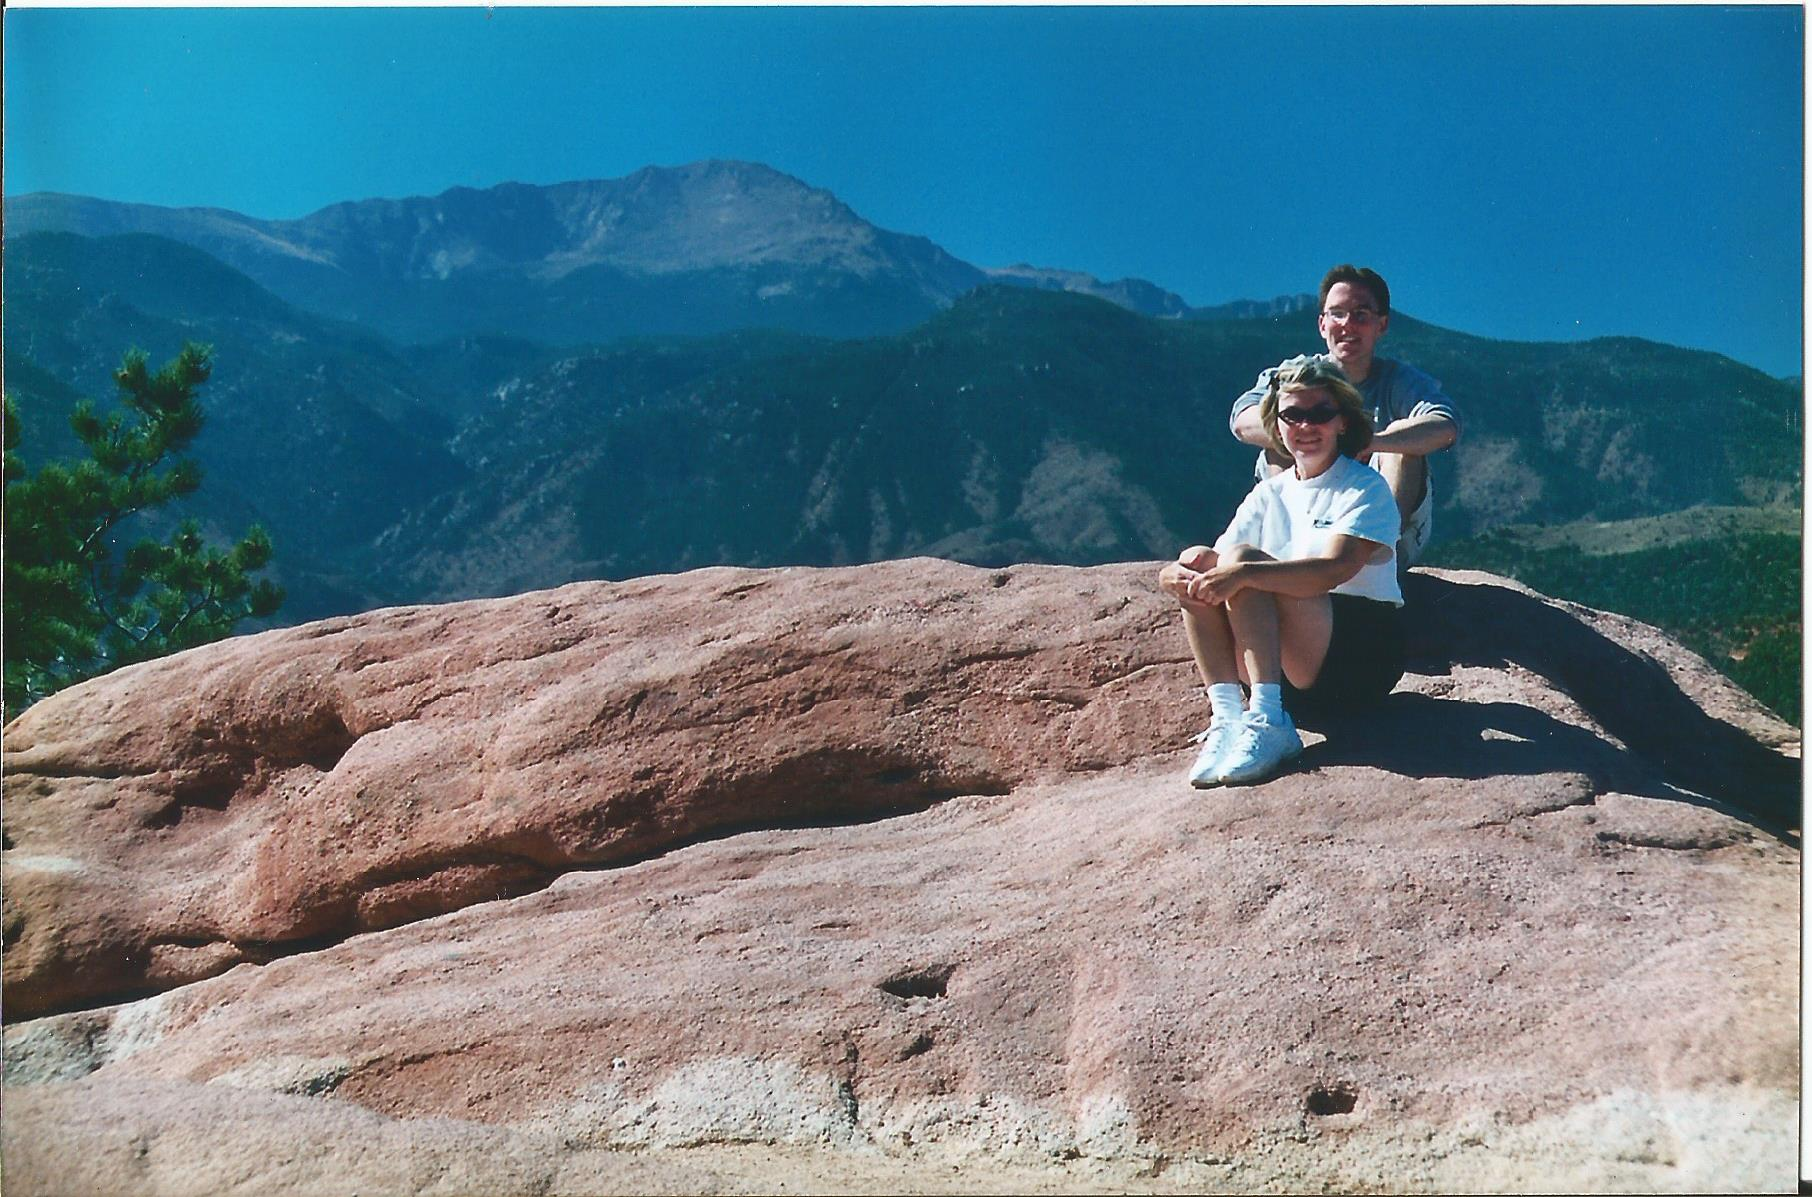 Nick and his mom Colorado Springs, CO when he first moved there in 2003.